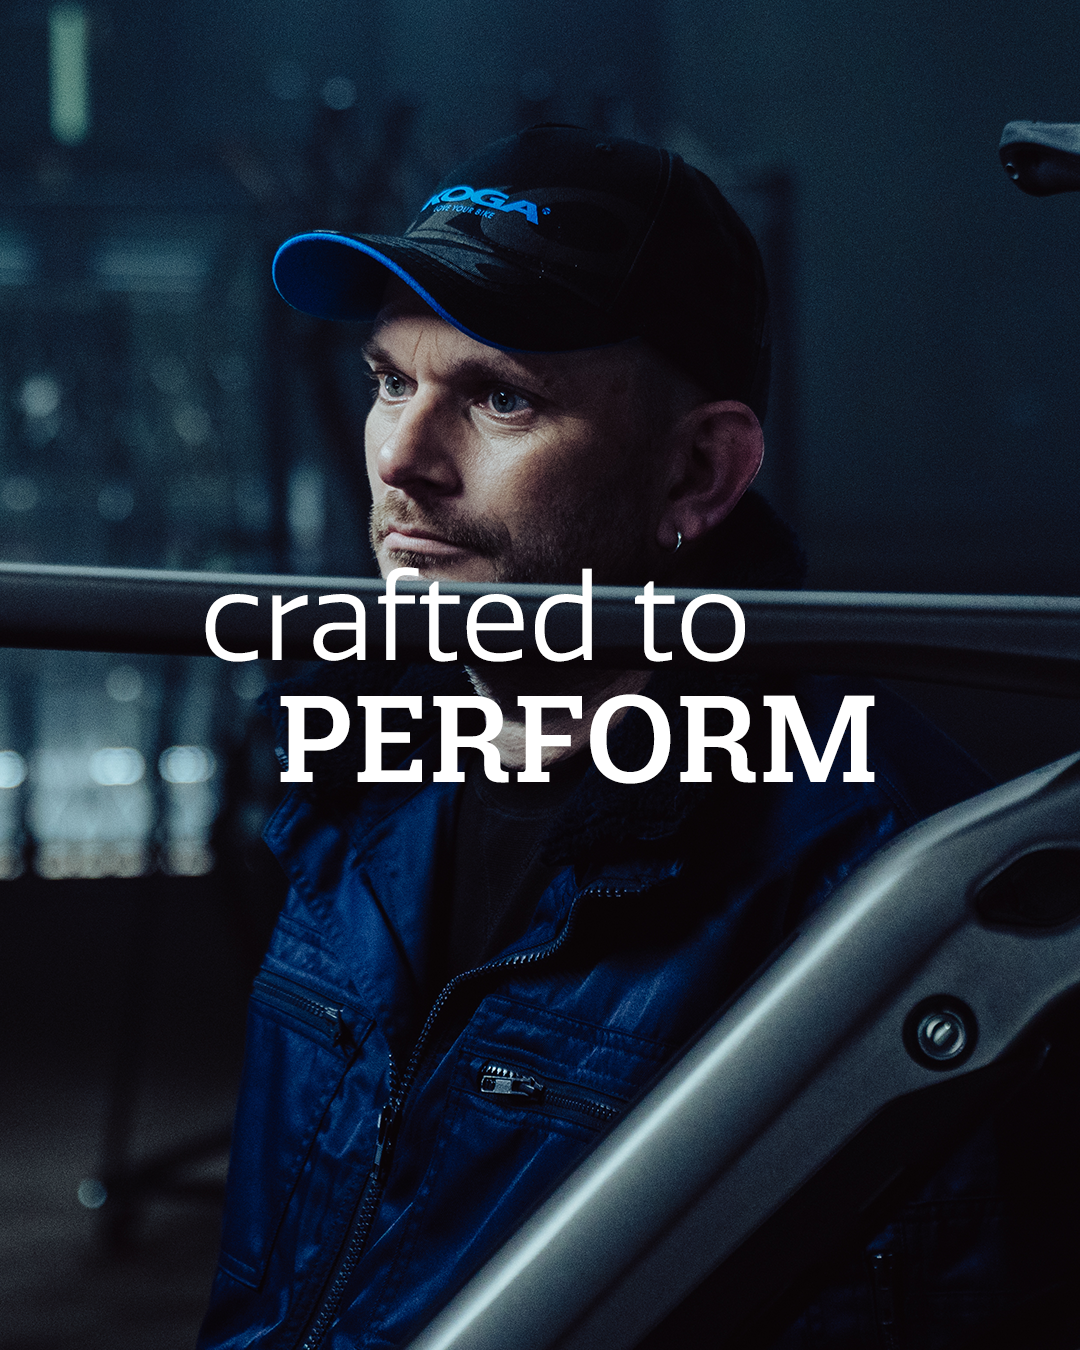 KOGA: Crafted to perform